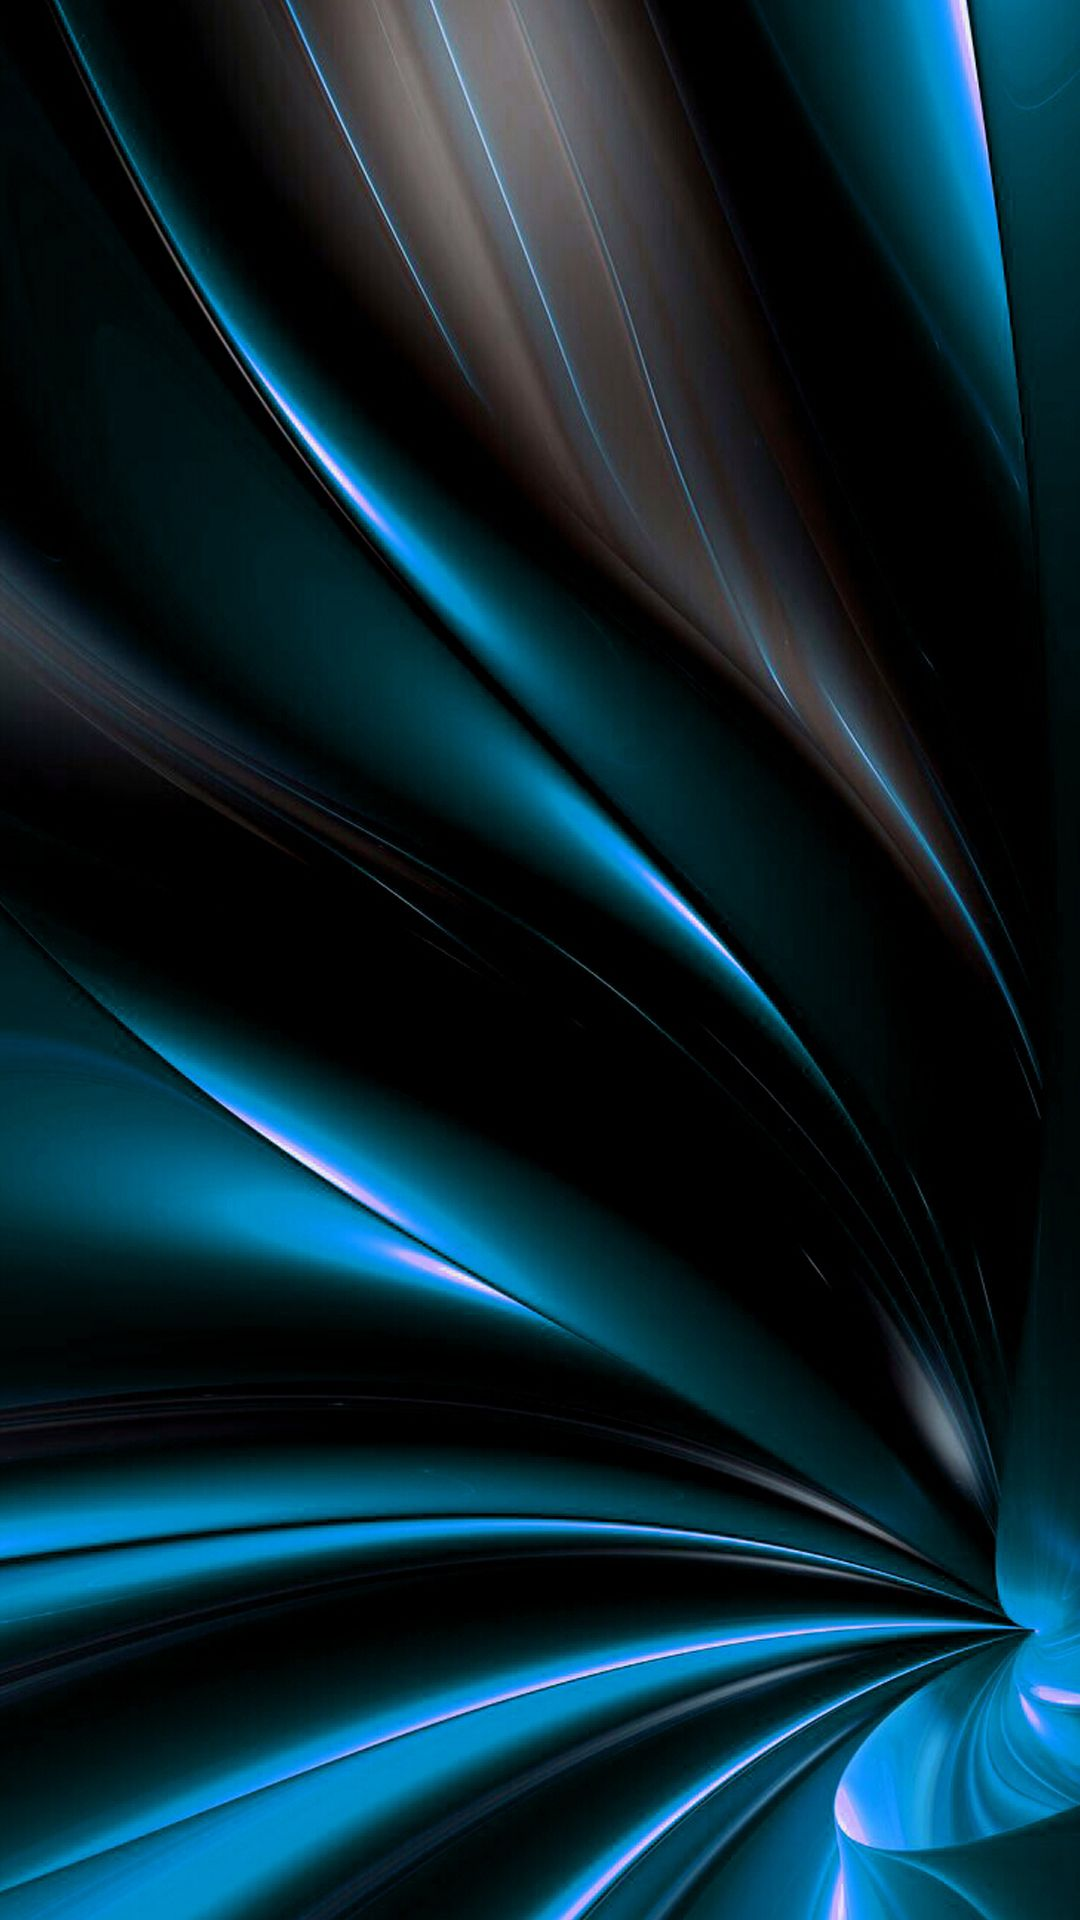 Cool Phone Wallpapers 02 of 10 with Dark Blue Background